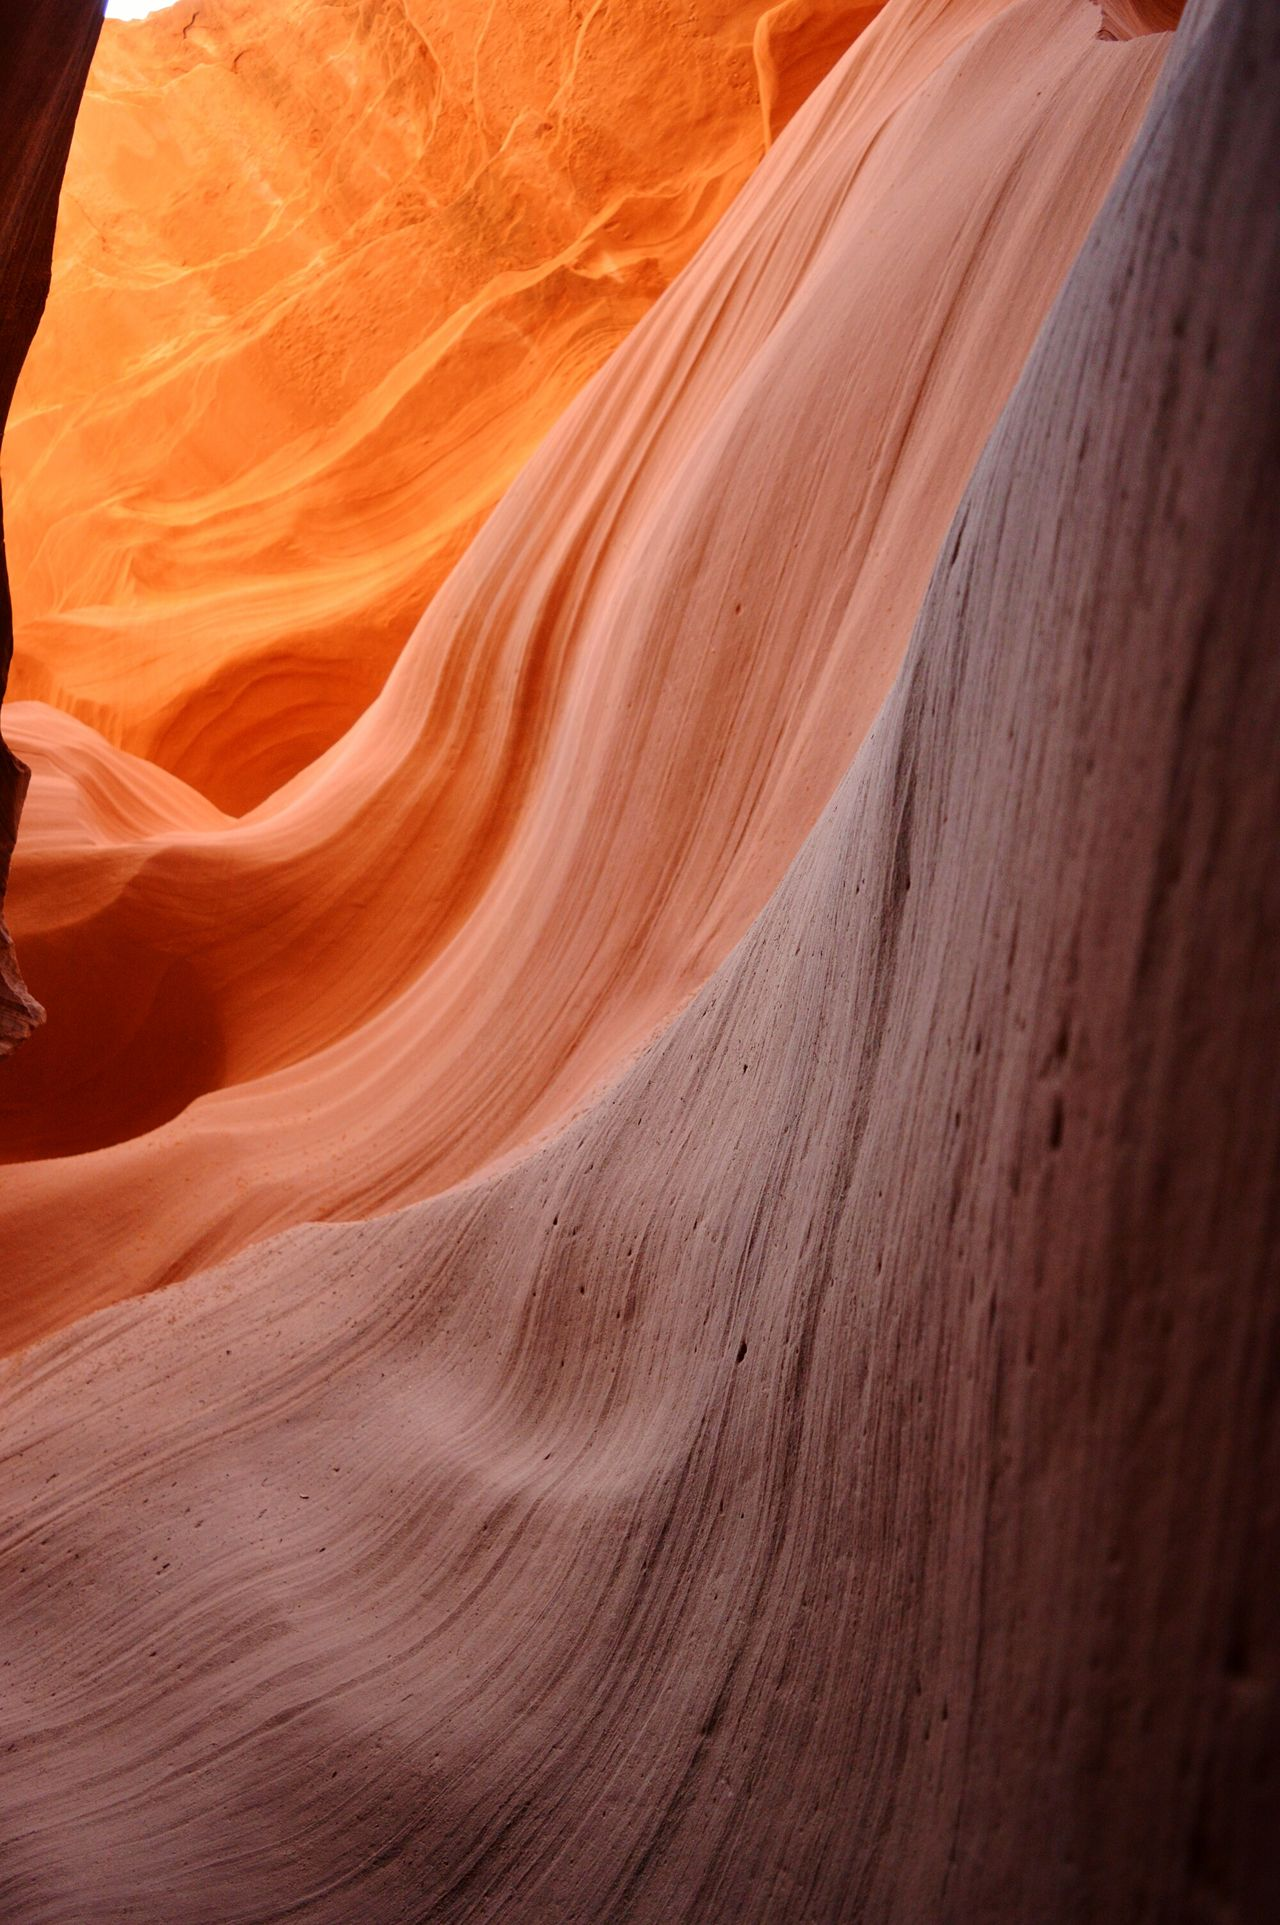 Rock - Object Canyon Rock Formation Geology Natural Landmark Travel Eroded Nature Sandstone Textured  Red Pattern Backgrounds Abstract Beauty In Nature Travel Destinations Physical Geography Scenics Desert Non-urban Scene Antelope Canyon AntelopeCanyon Antelope Canyon USA Antelope